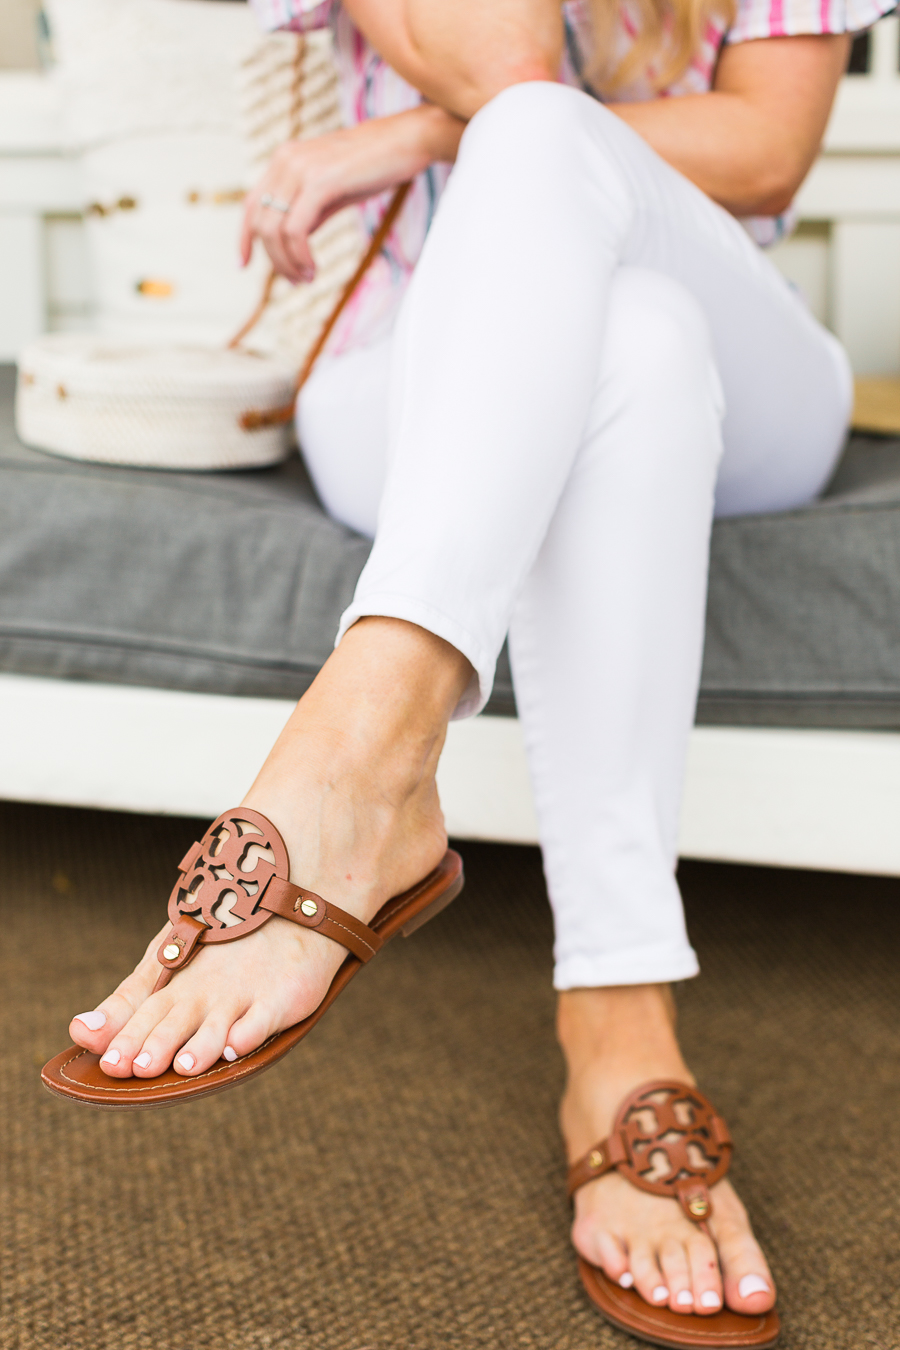 TORY BURCH MILLER SANDALS REVIEW | ARE THEY WORTH THE PRICE? | Strawberry  Chic